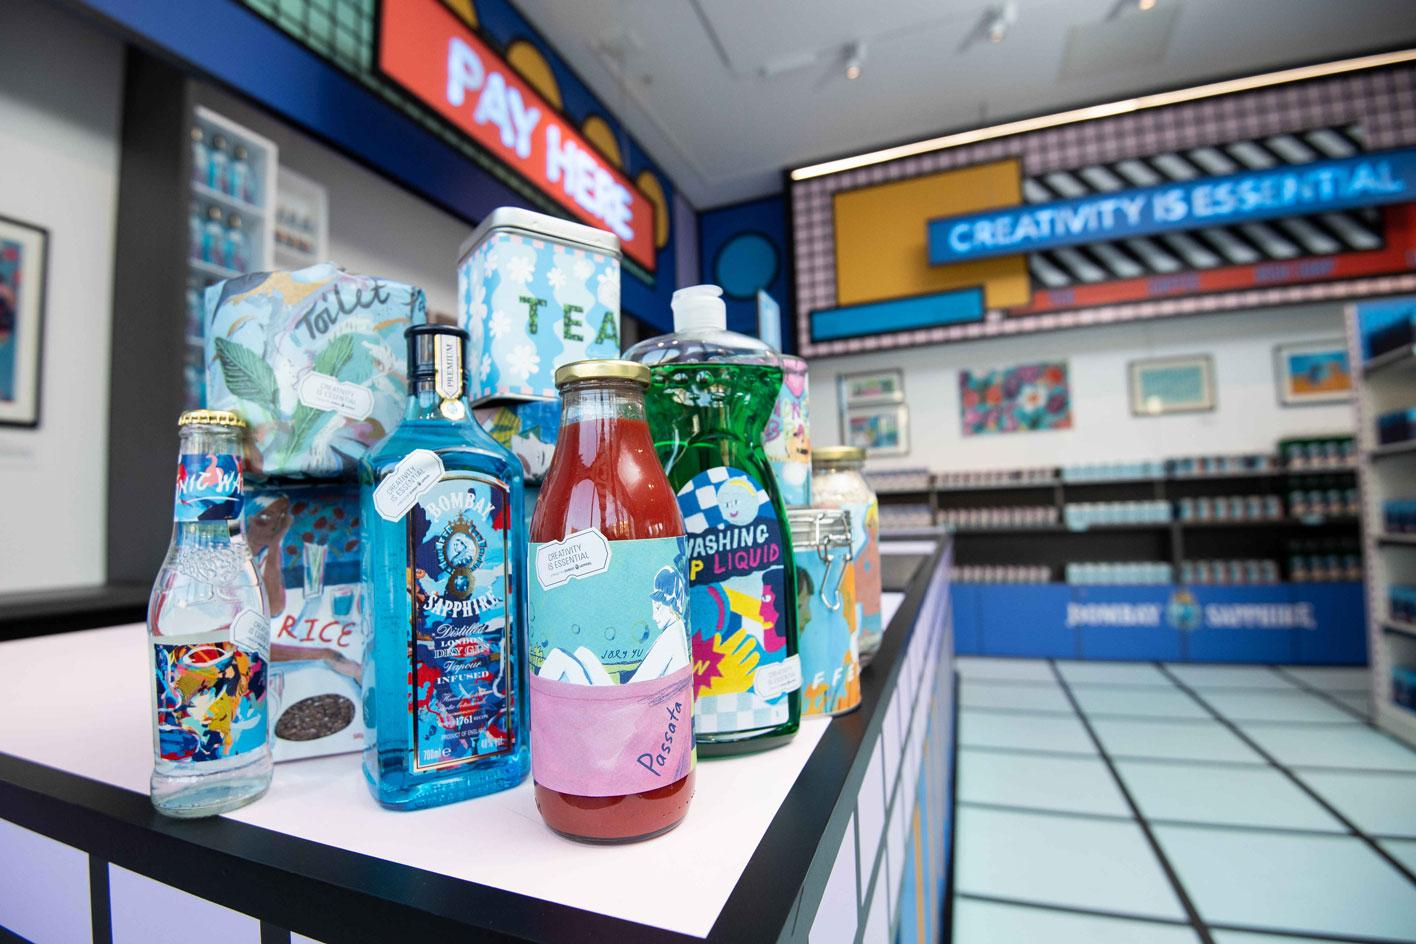 Inside 'Supermarket' at London's Design Musuem, open from 21- 25 April